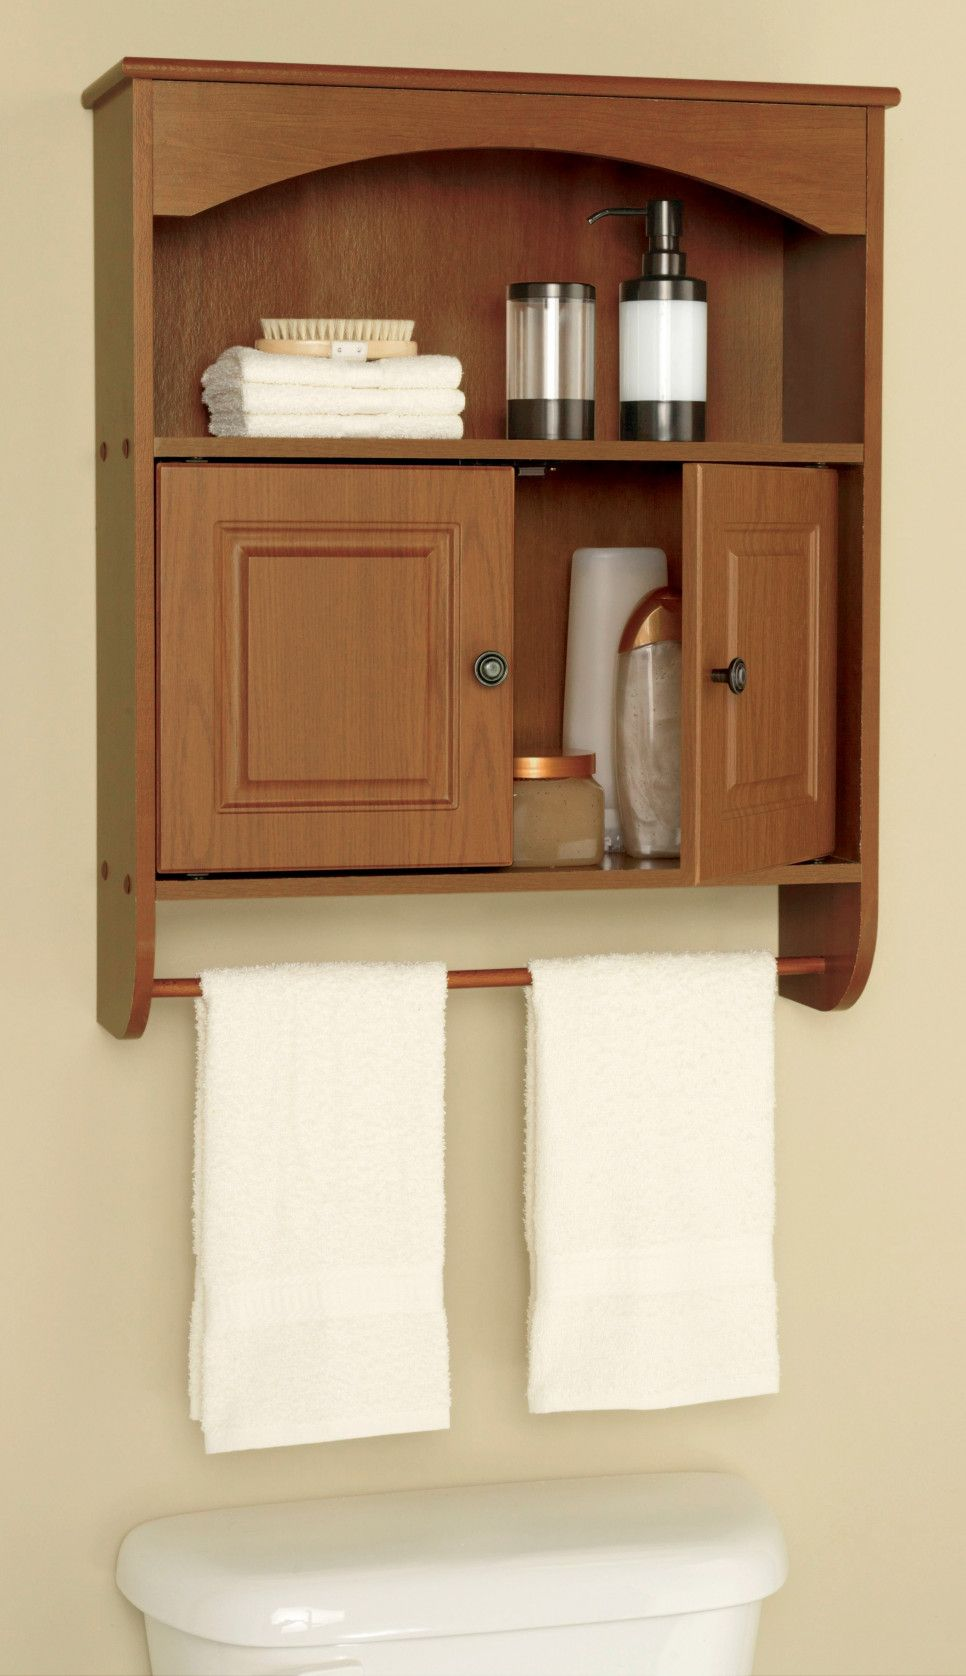 99 Bathroom Wall Cabinet With Towel Bar Kitchen Decor Theme Ideas Check More At